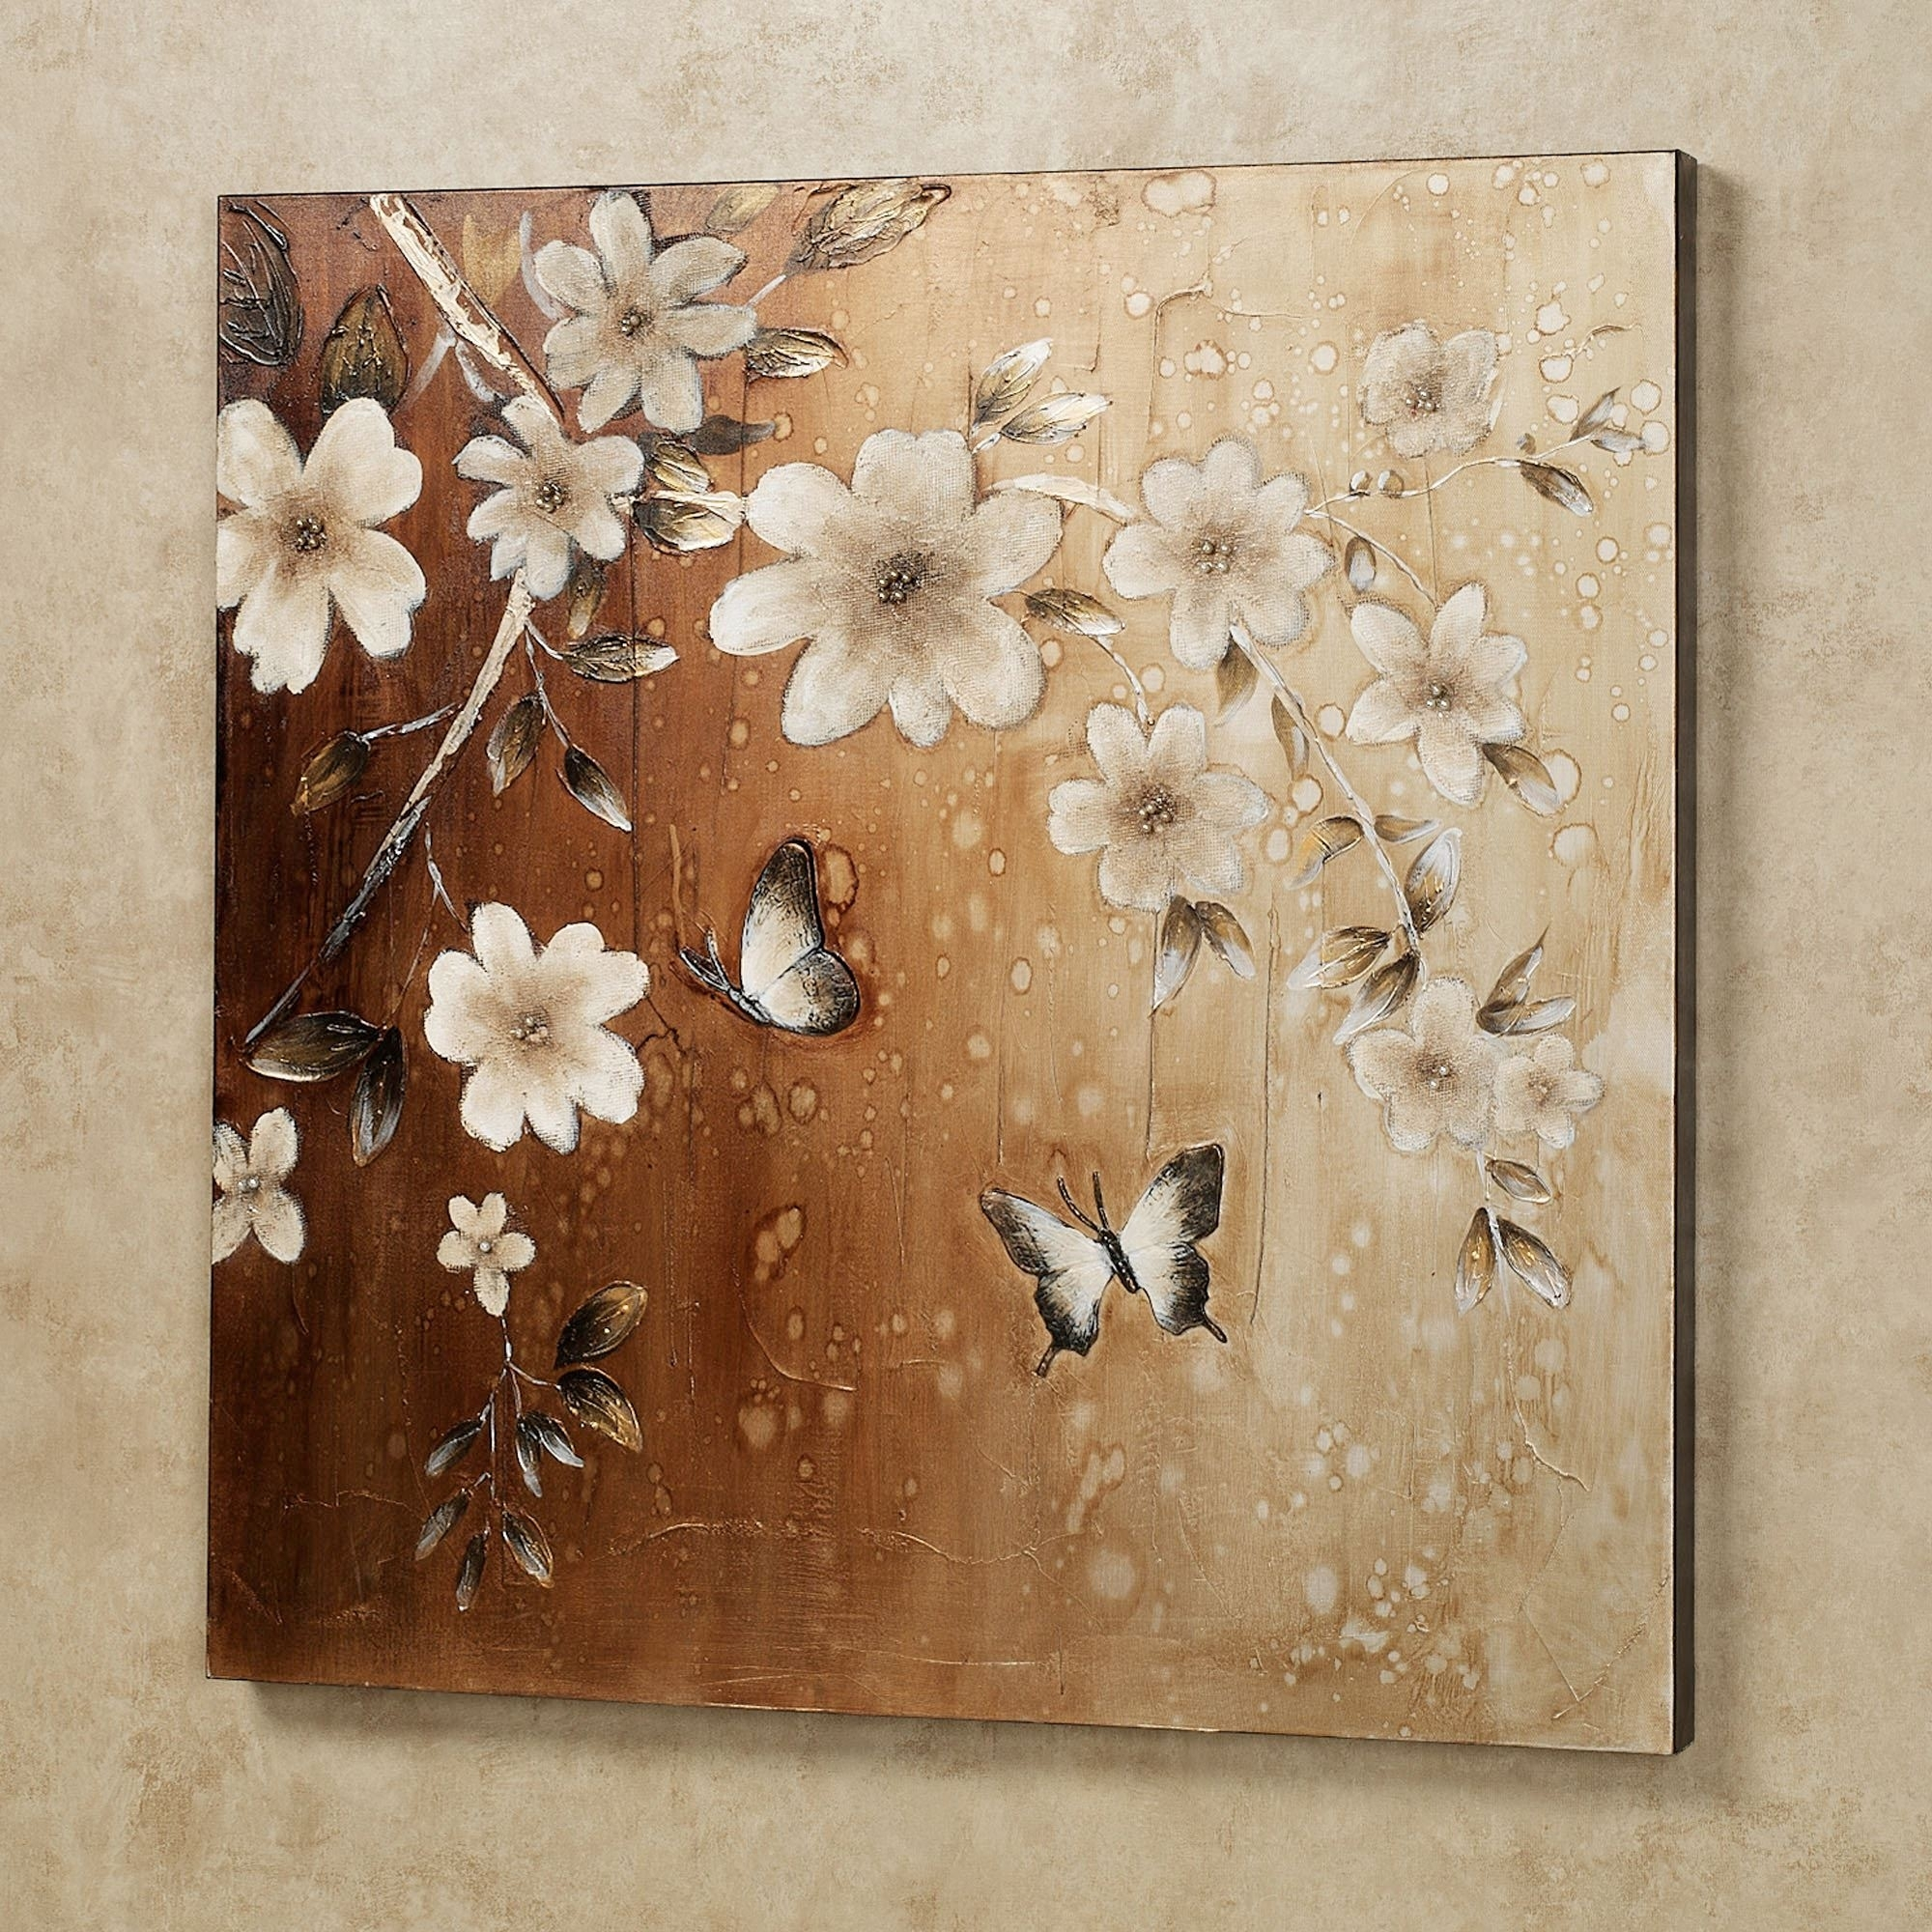 Midday Sun Butterfly Floral Canvas Wall Art Intended For Latest Abstract Butterfly Wall Art (View 5 of 20)